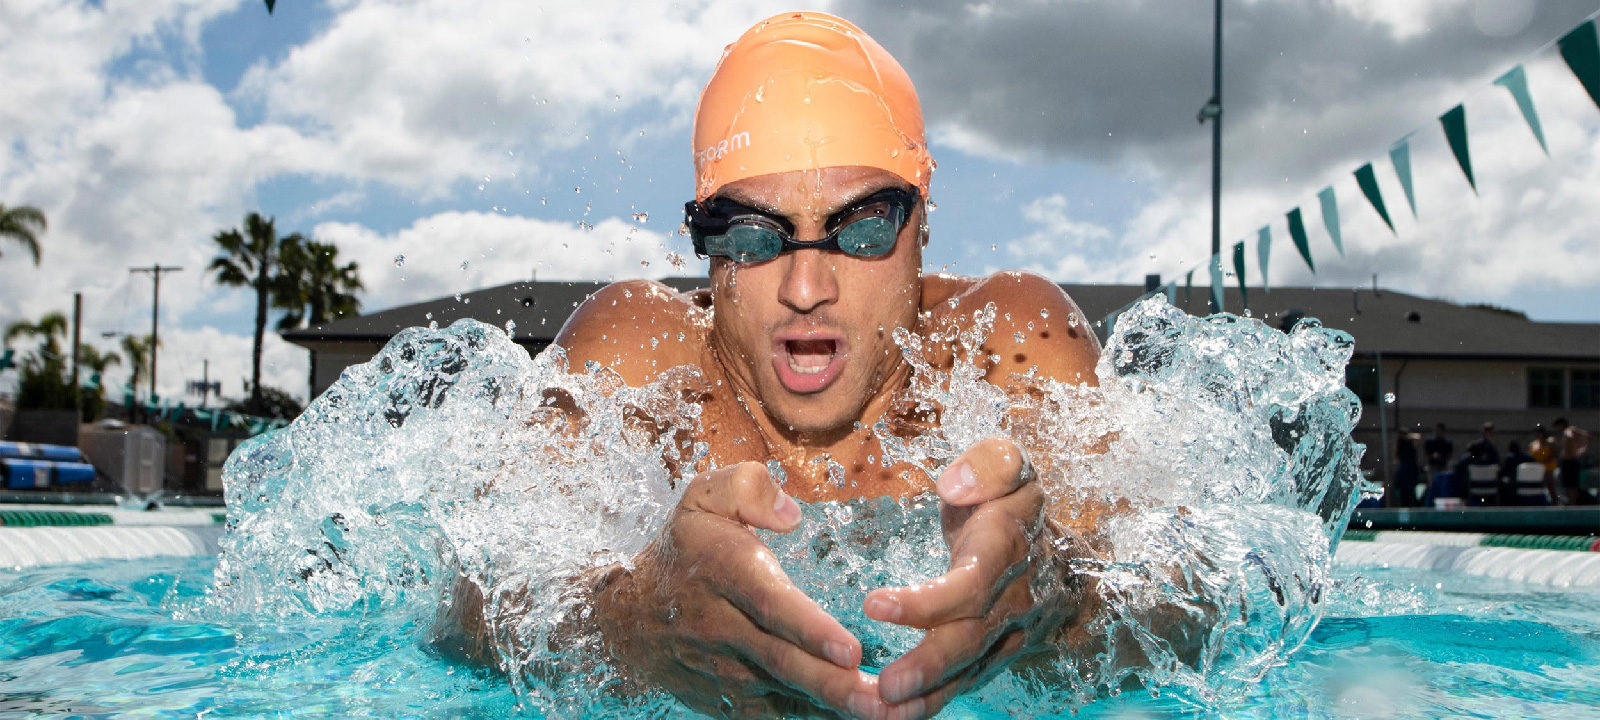 6 Ways The FORM Swim Goggles Will Help You Smash Your 2020 Goals